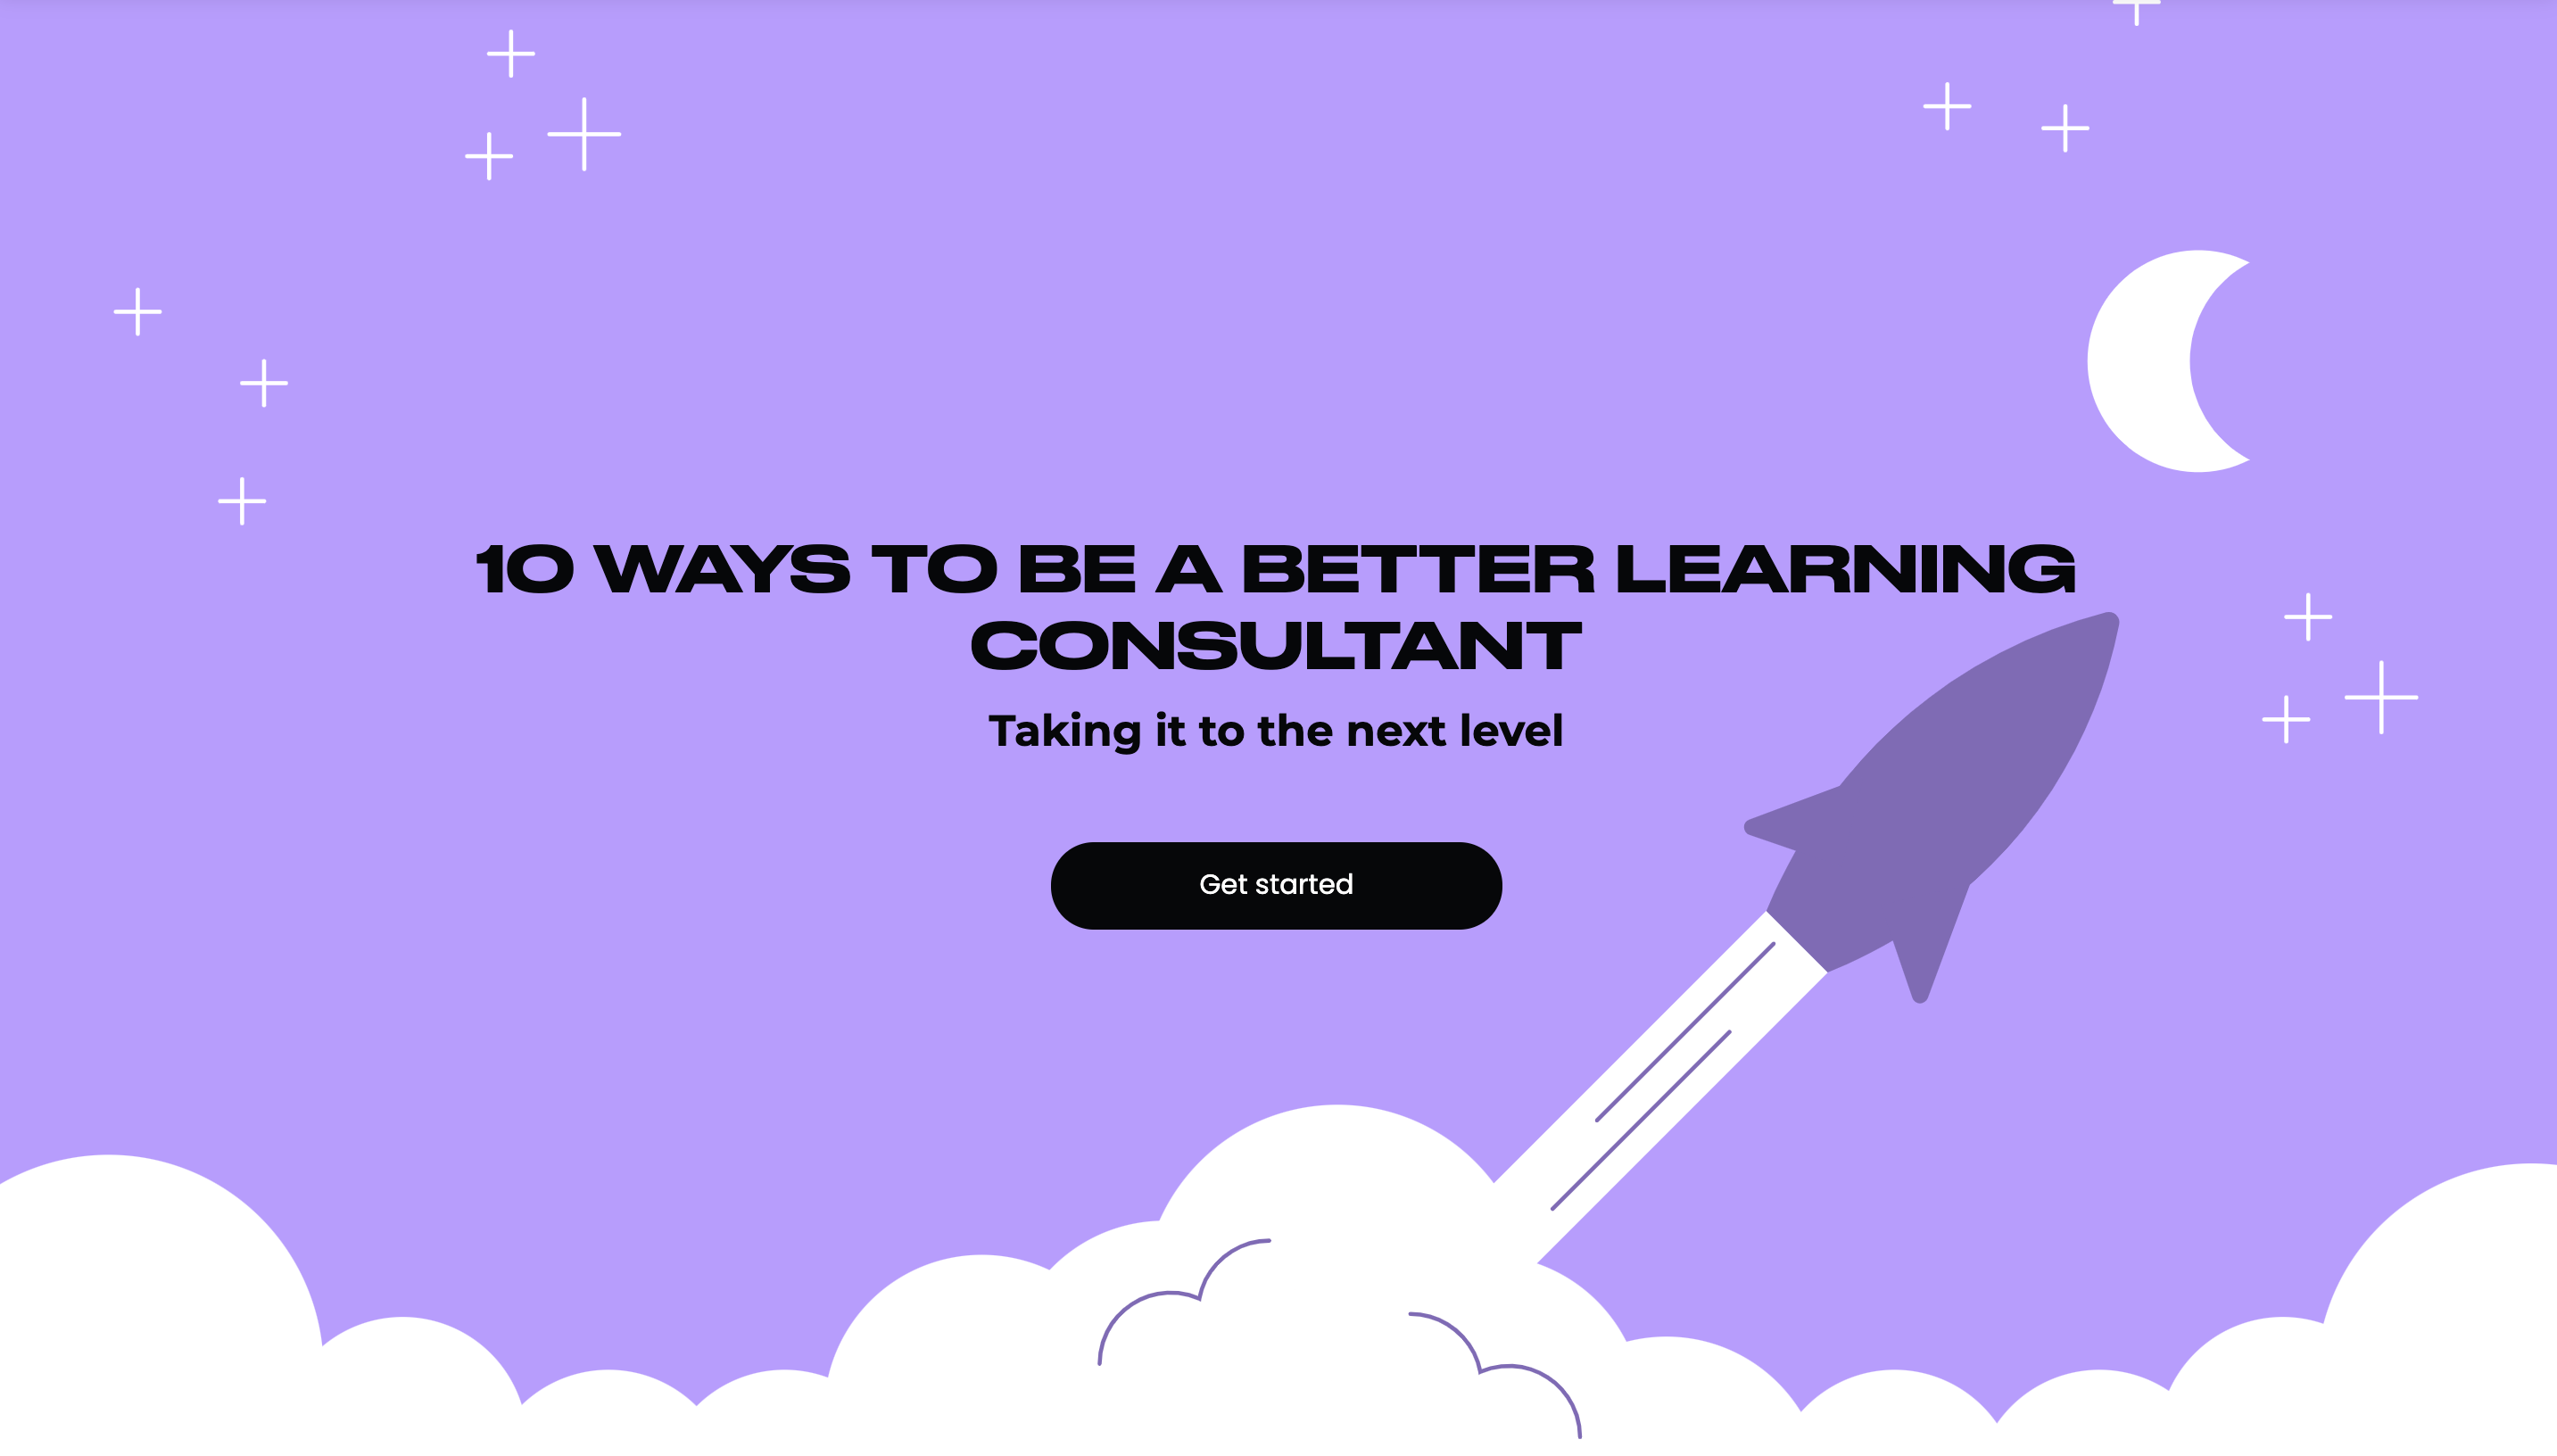 Better learning consultant